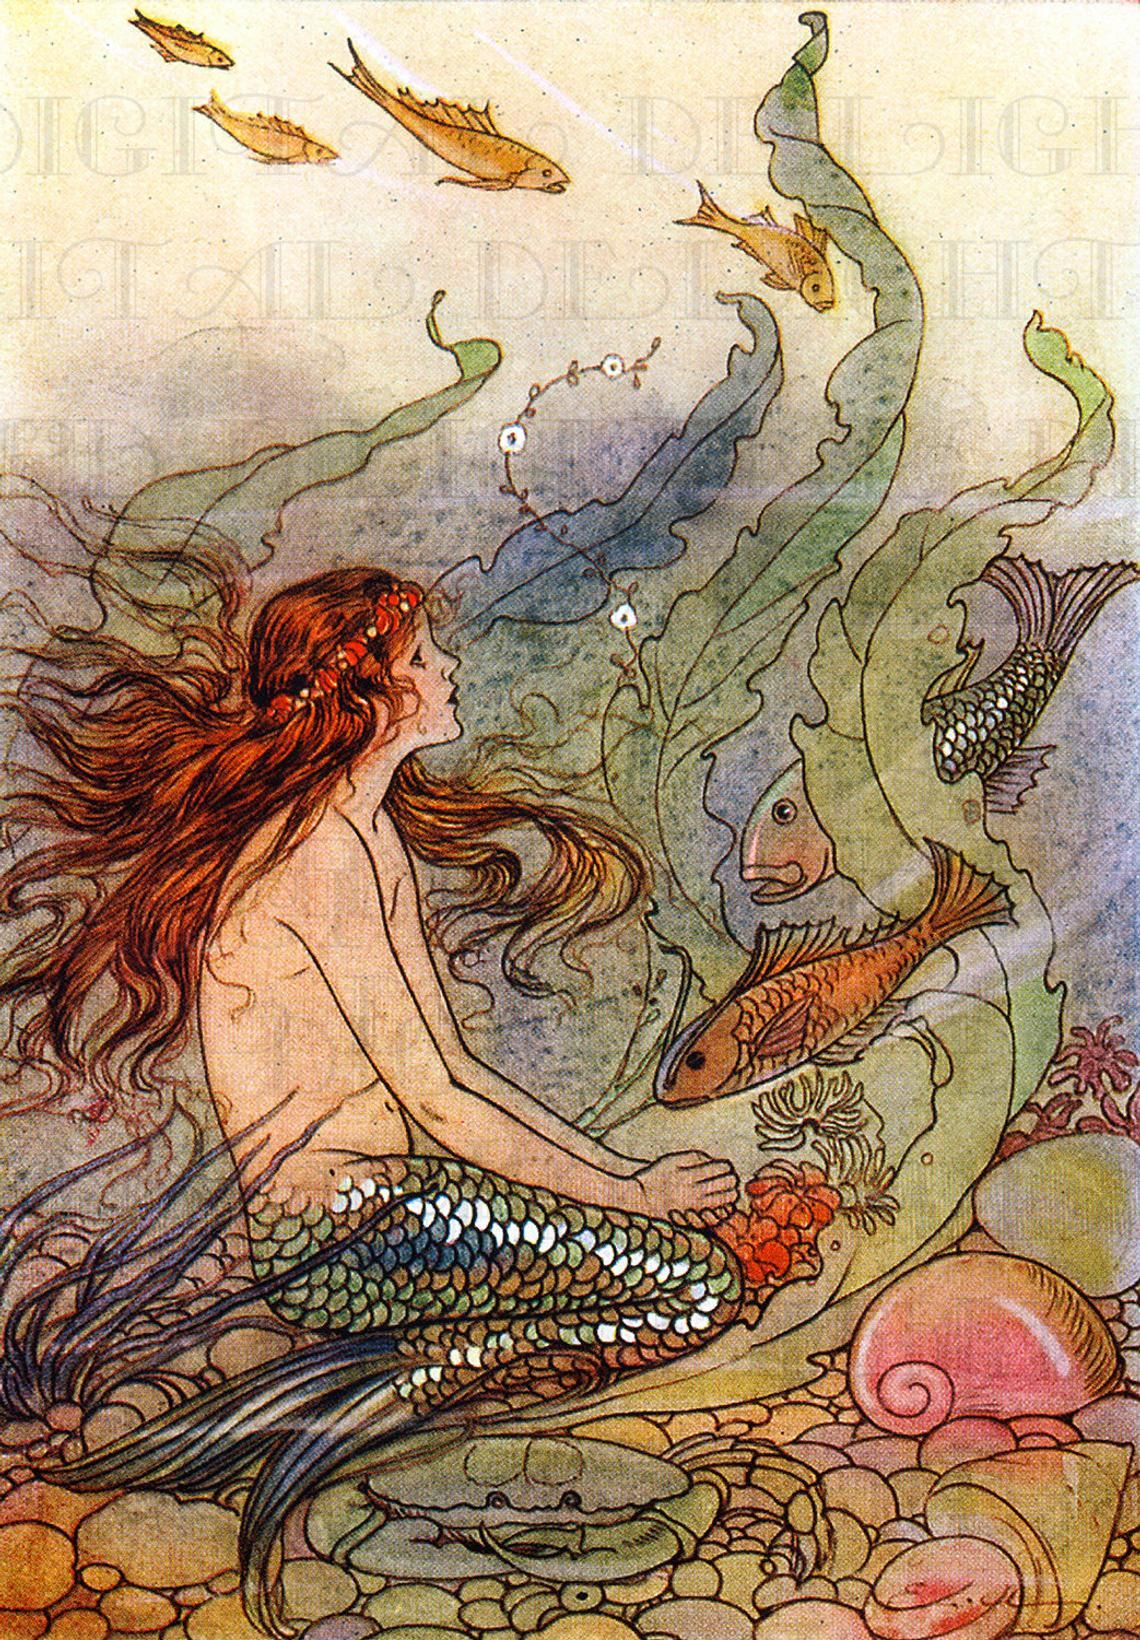 Beautiful flowing little mermaid among colorful fishes